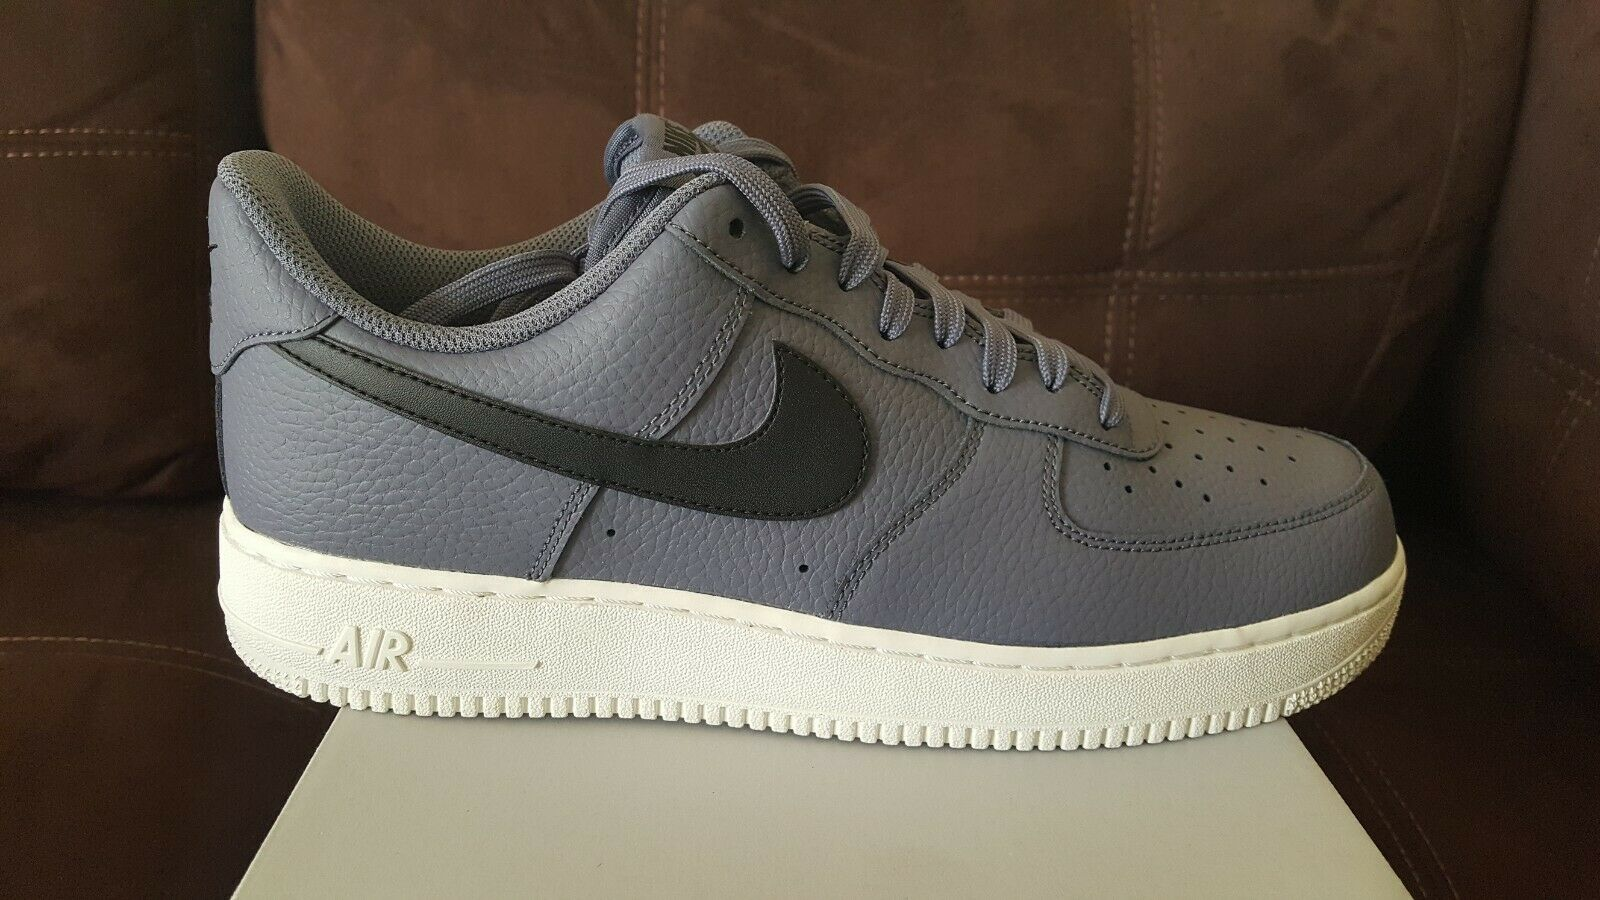 Nike Mens Size 11.5 Air Force 1 '07 Low shoes Light Carbon  Black  AA4083 006